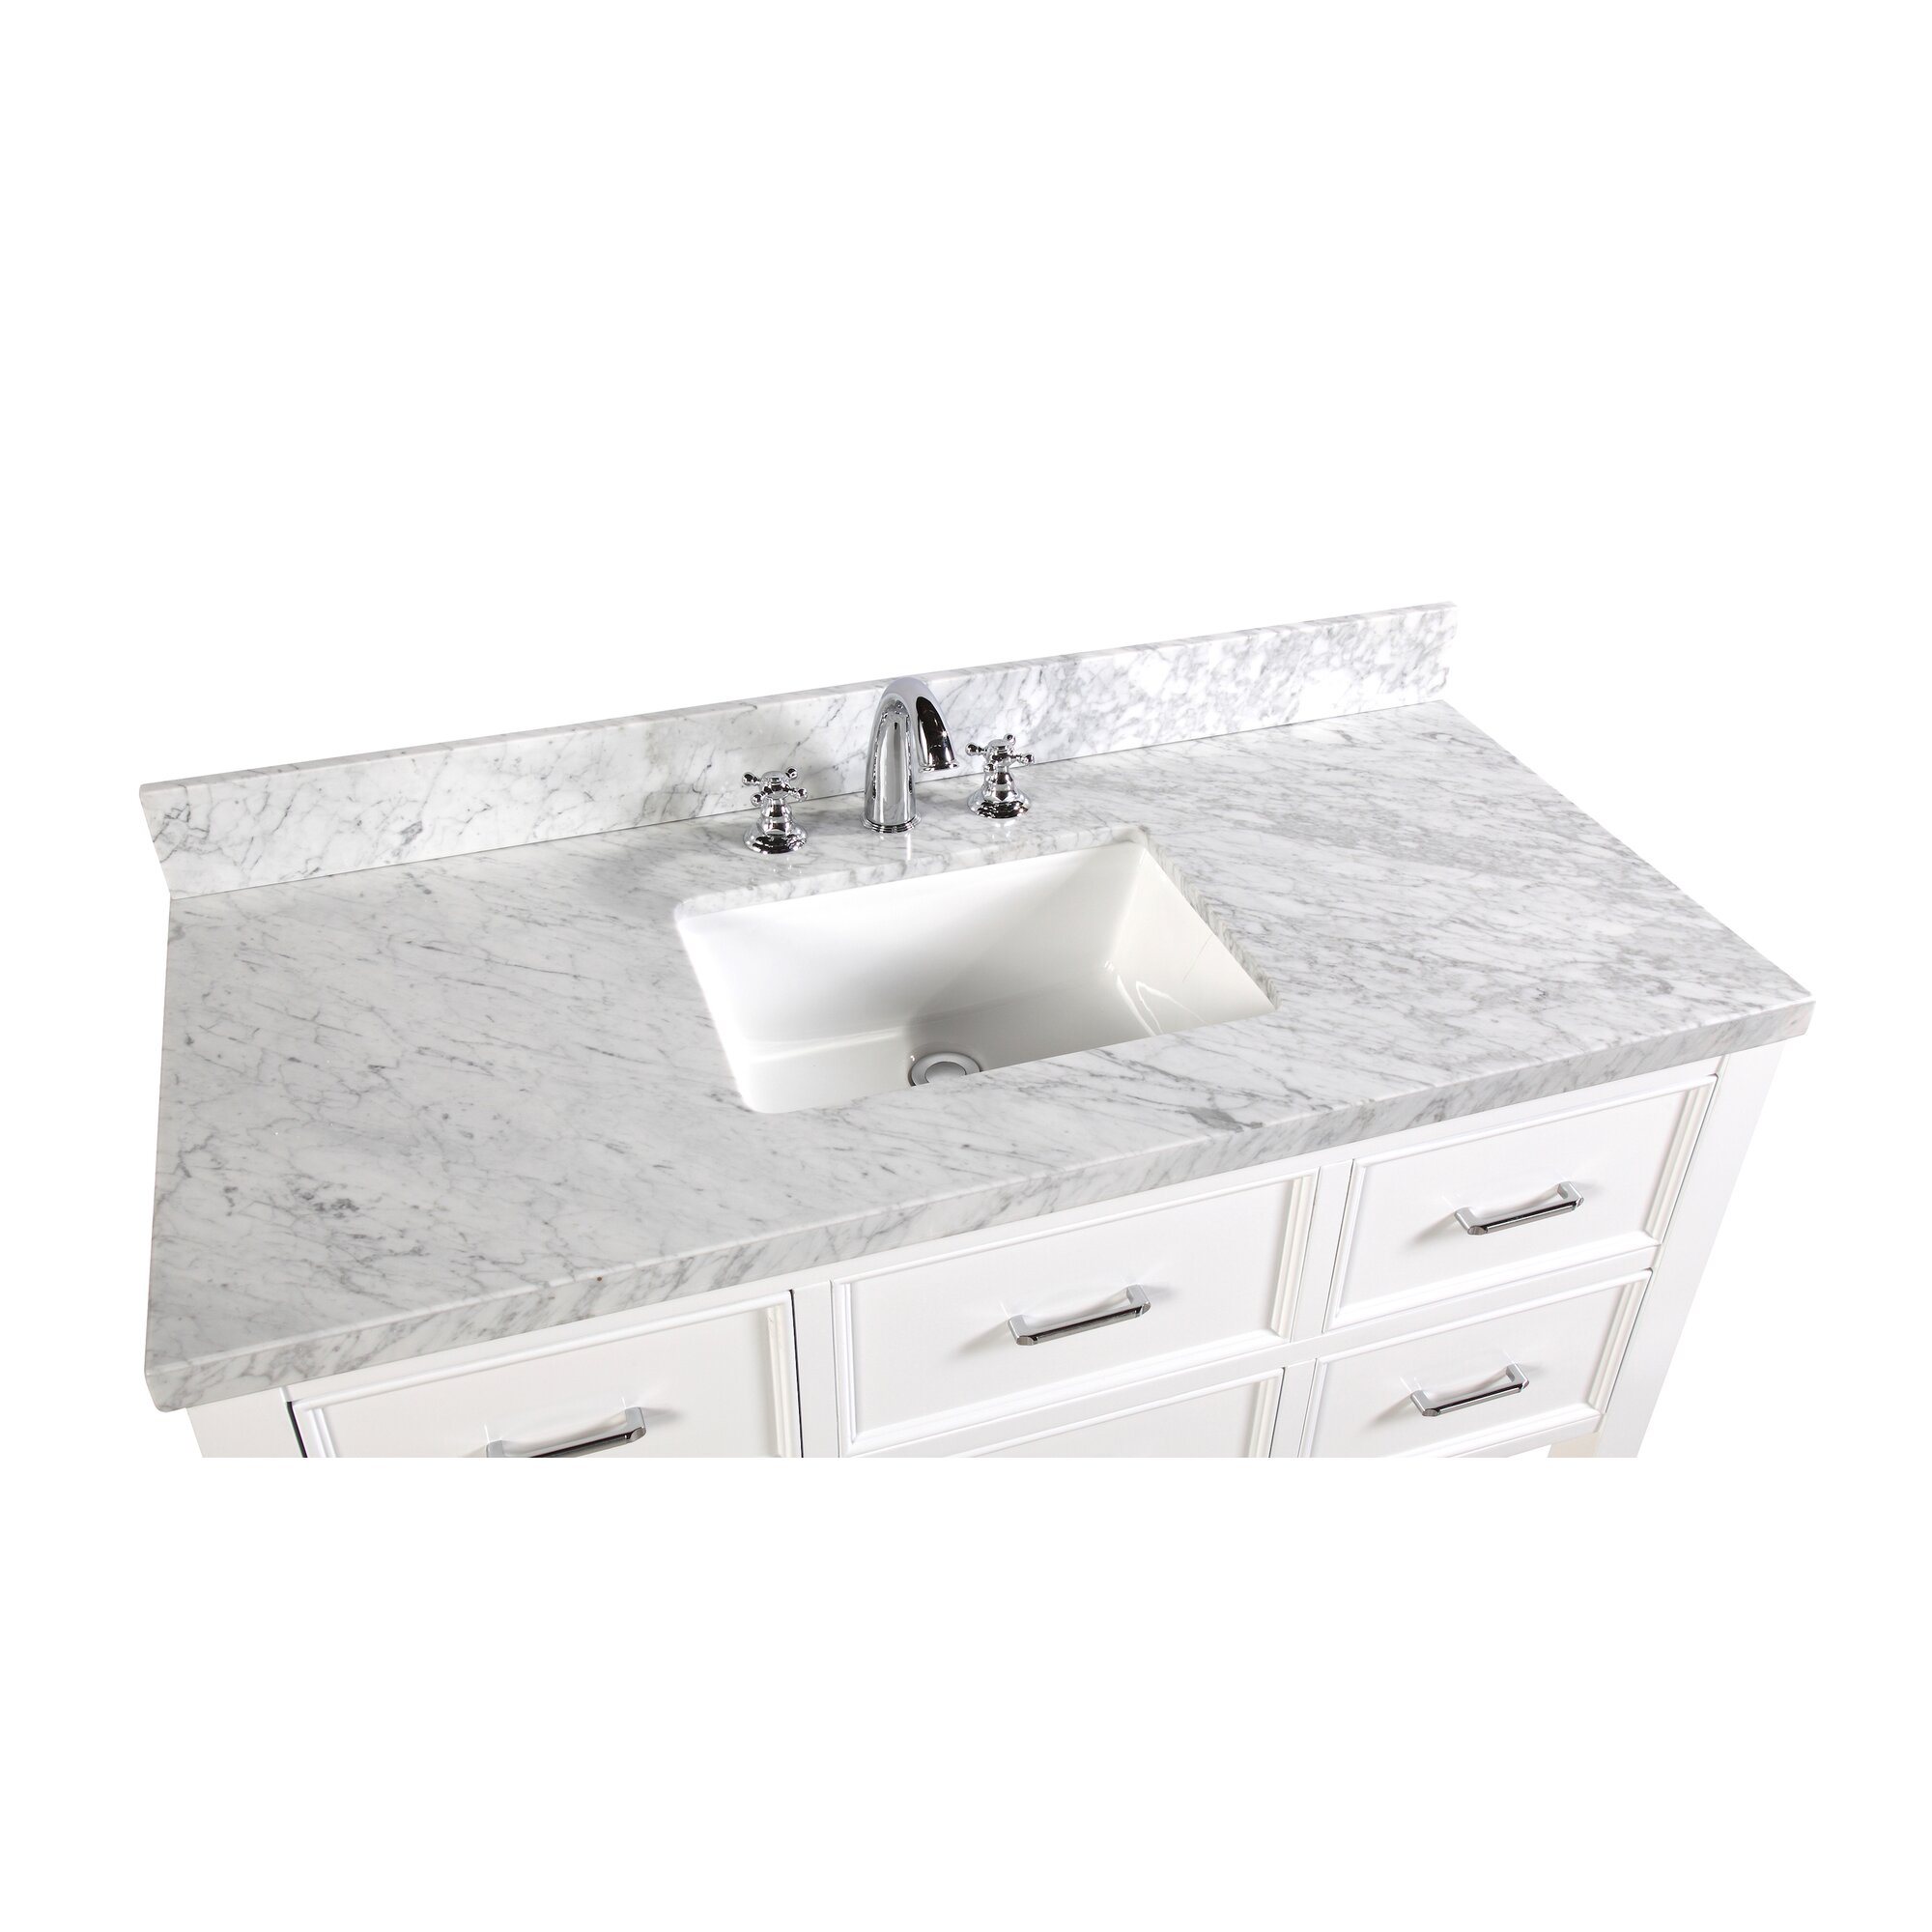 Custom Bathroom Vanities Nh custom bathroom vanities nh : brightpulse